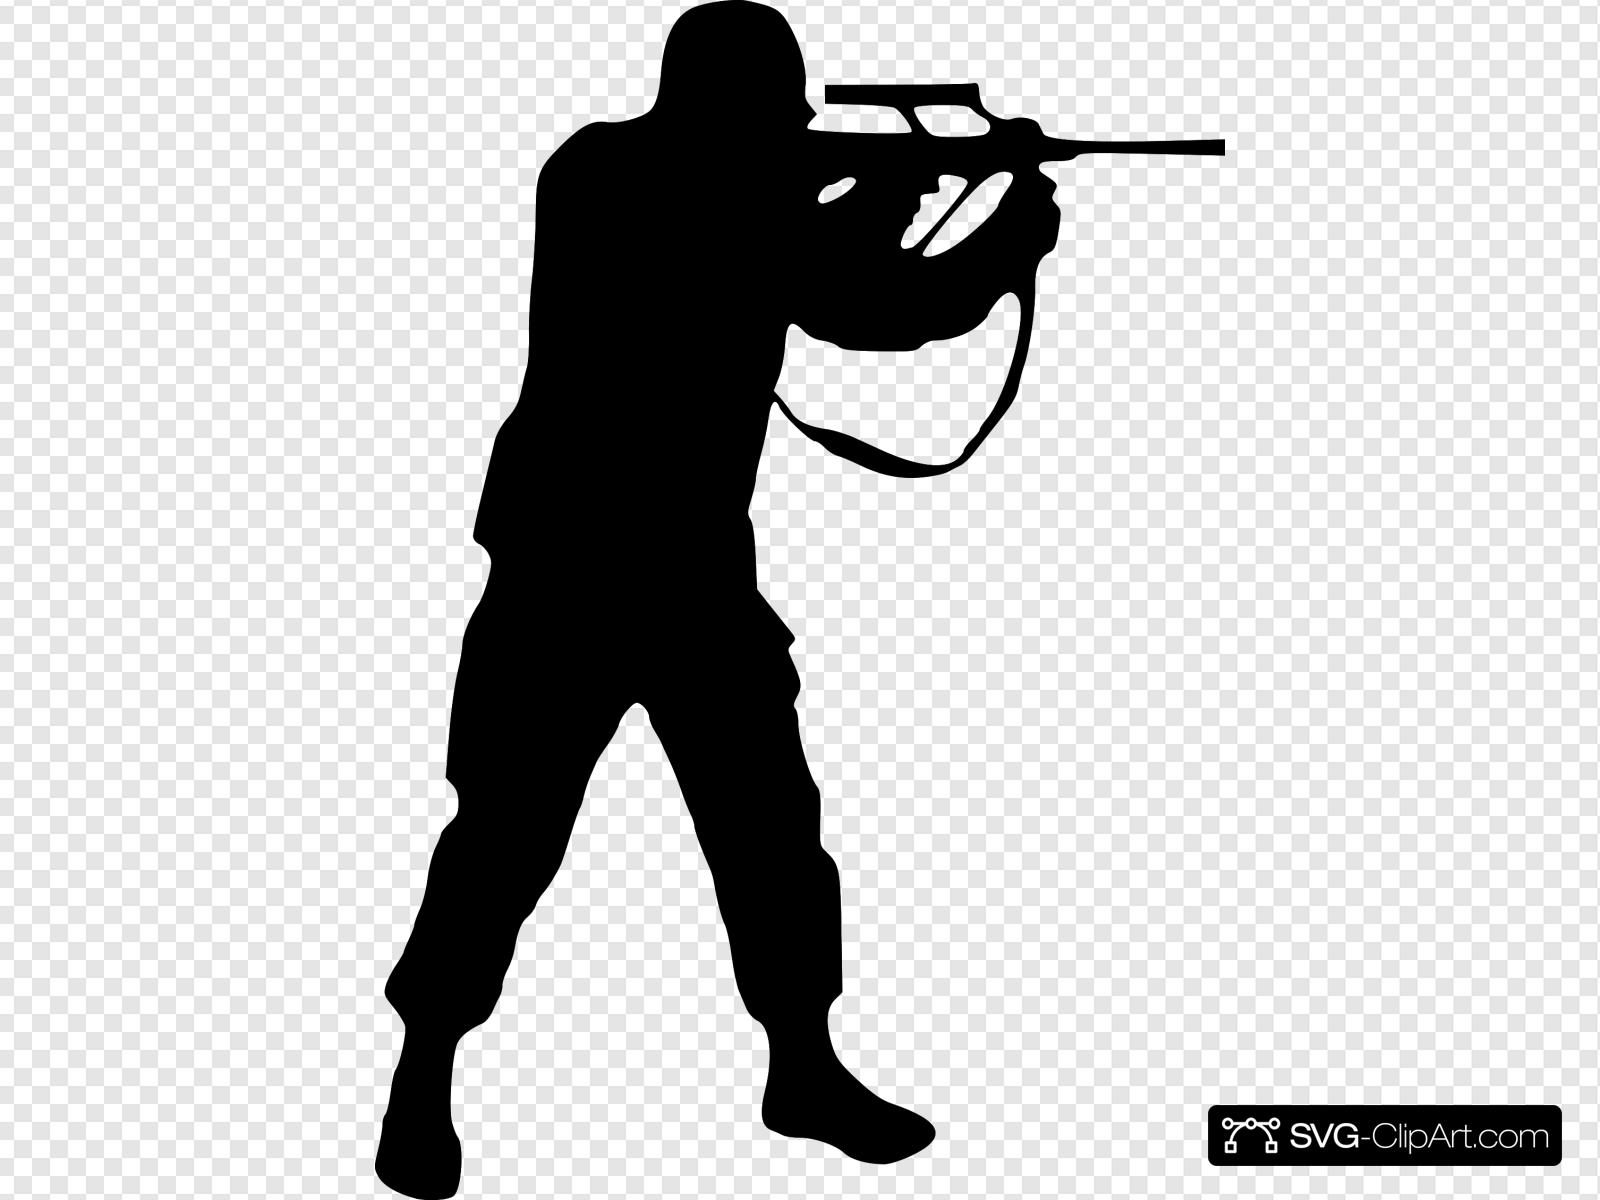 Soldier Clip art, Icon and SVG.